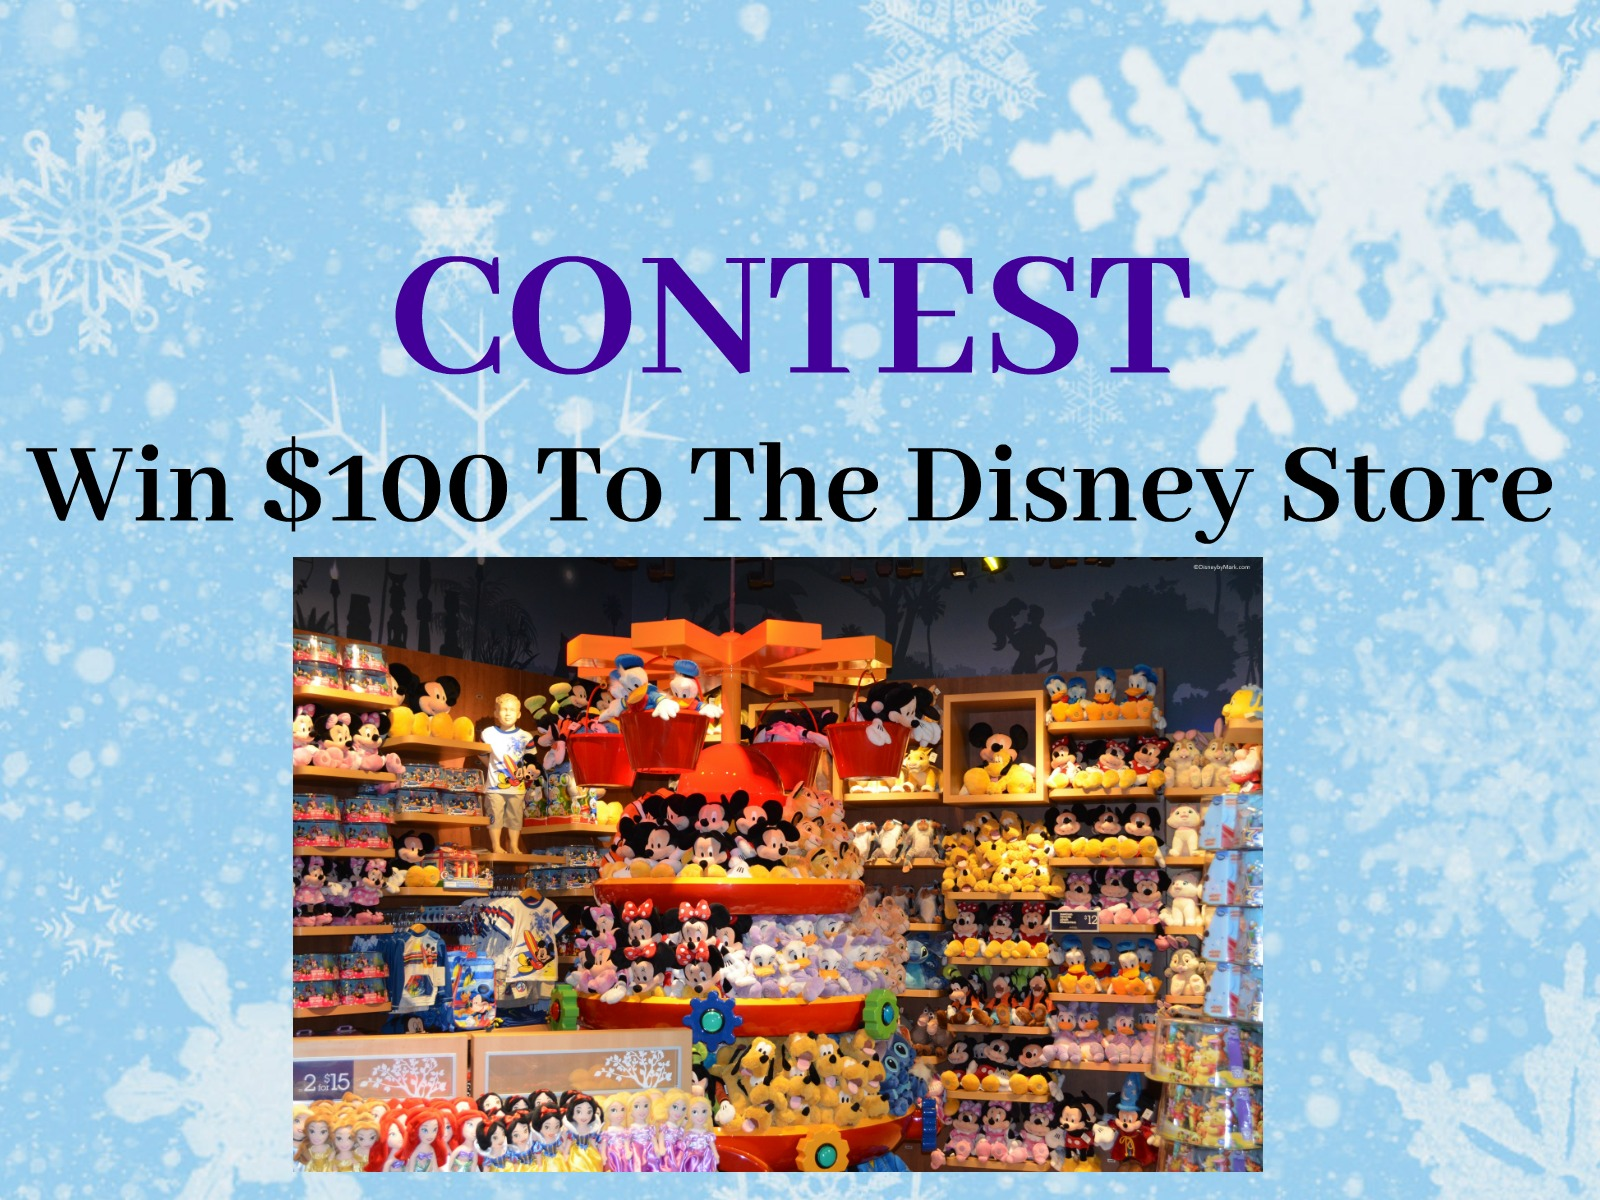 CONTEST: Win A Disney Store Gift Card